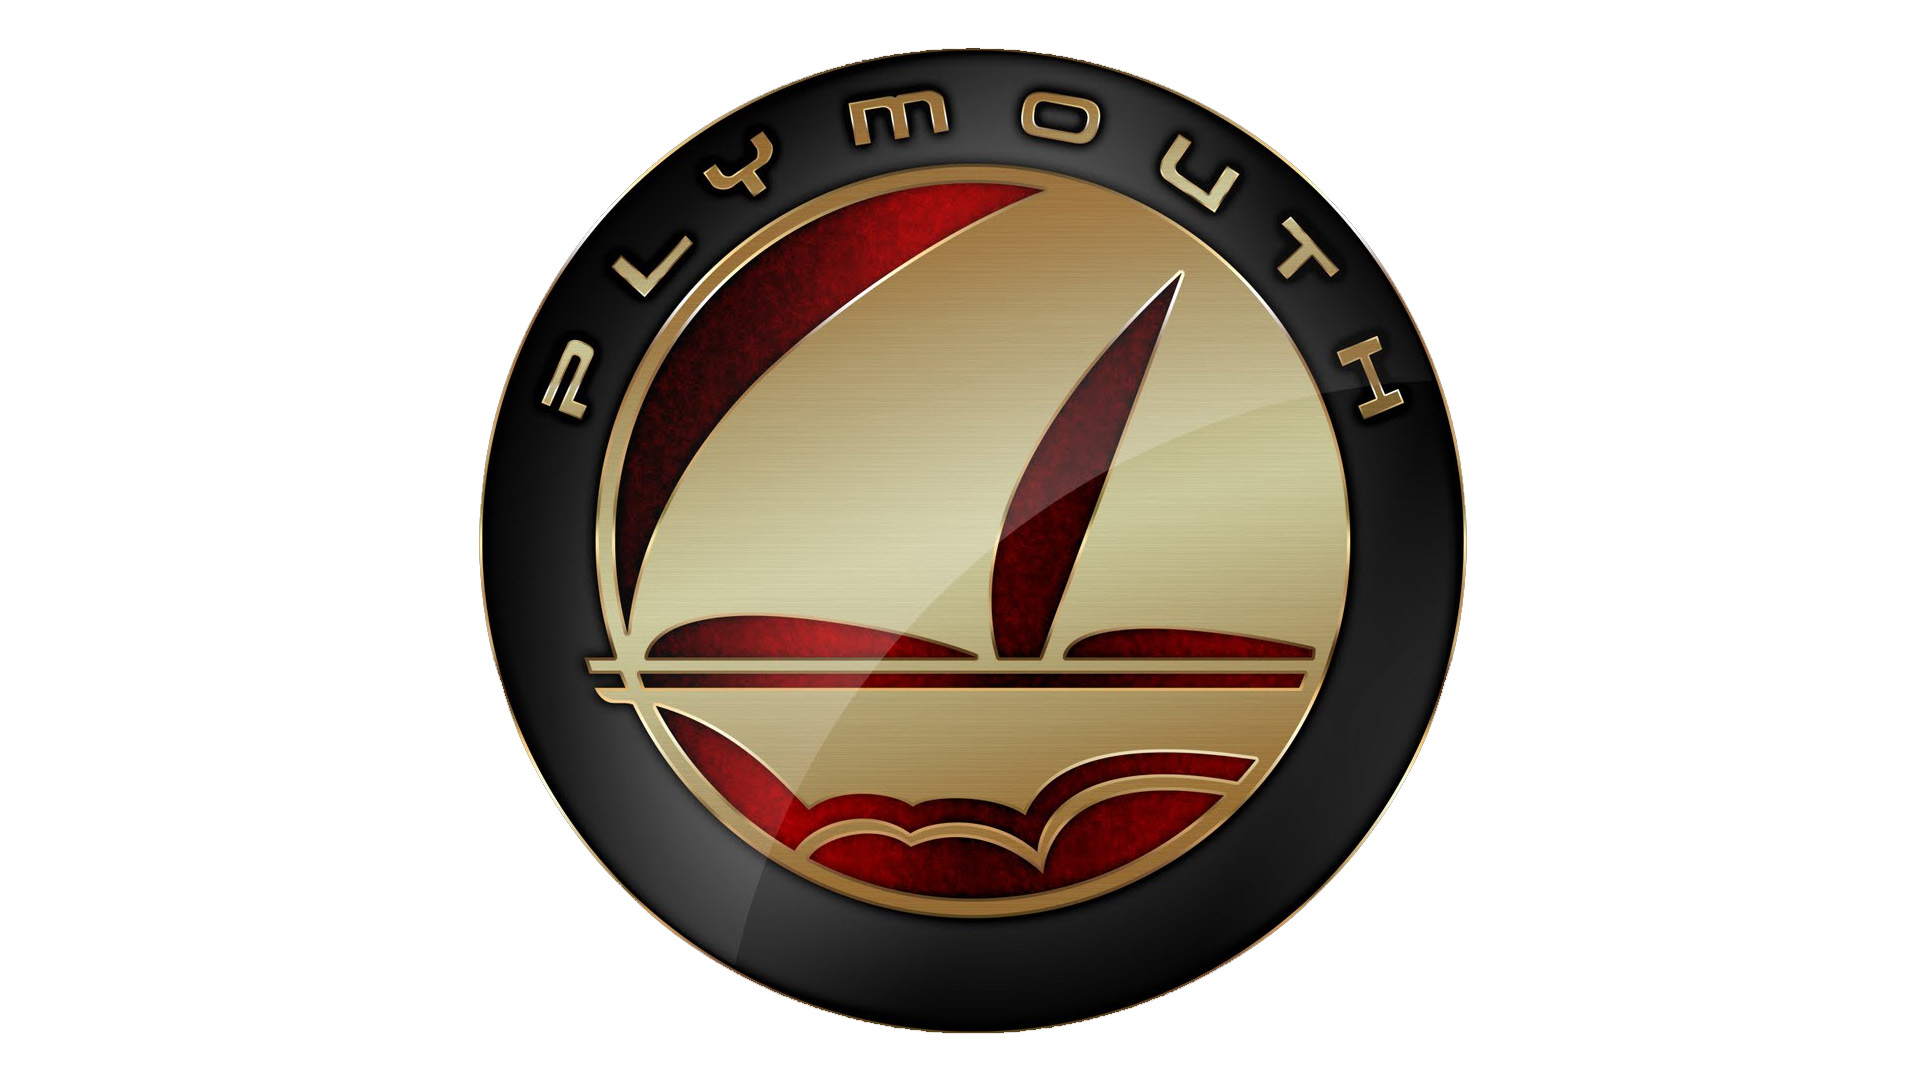 Plymouth Logo Meaning And History Latest Models World Cars Brands